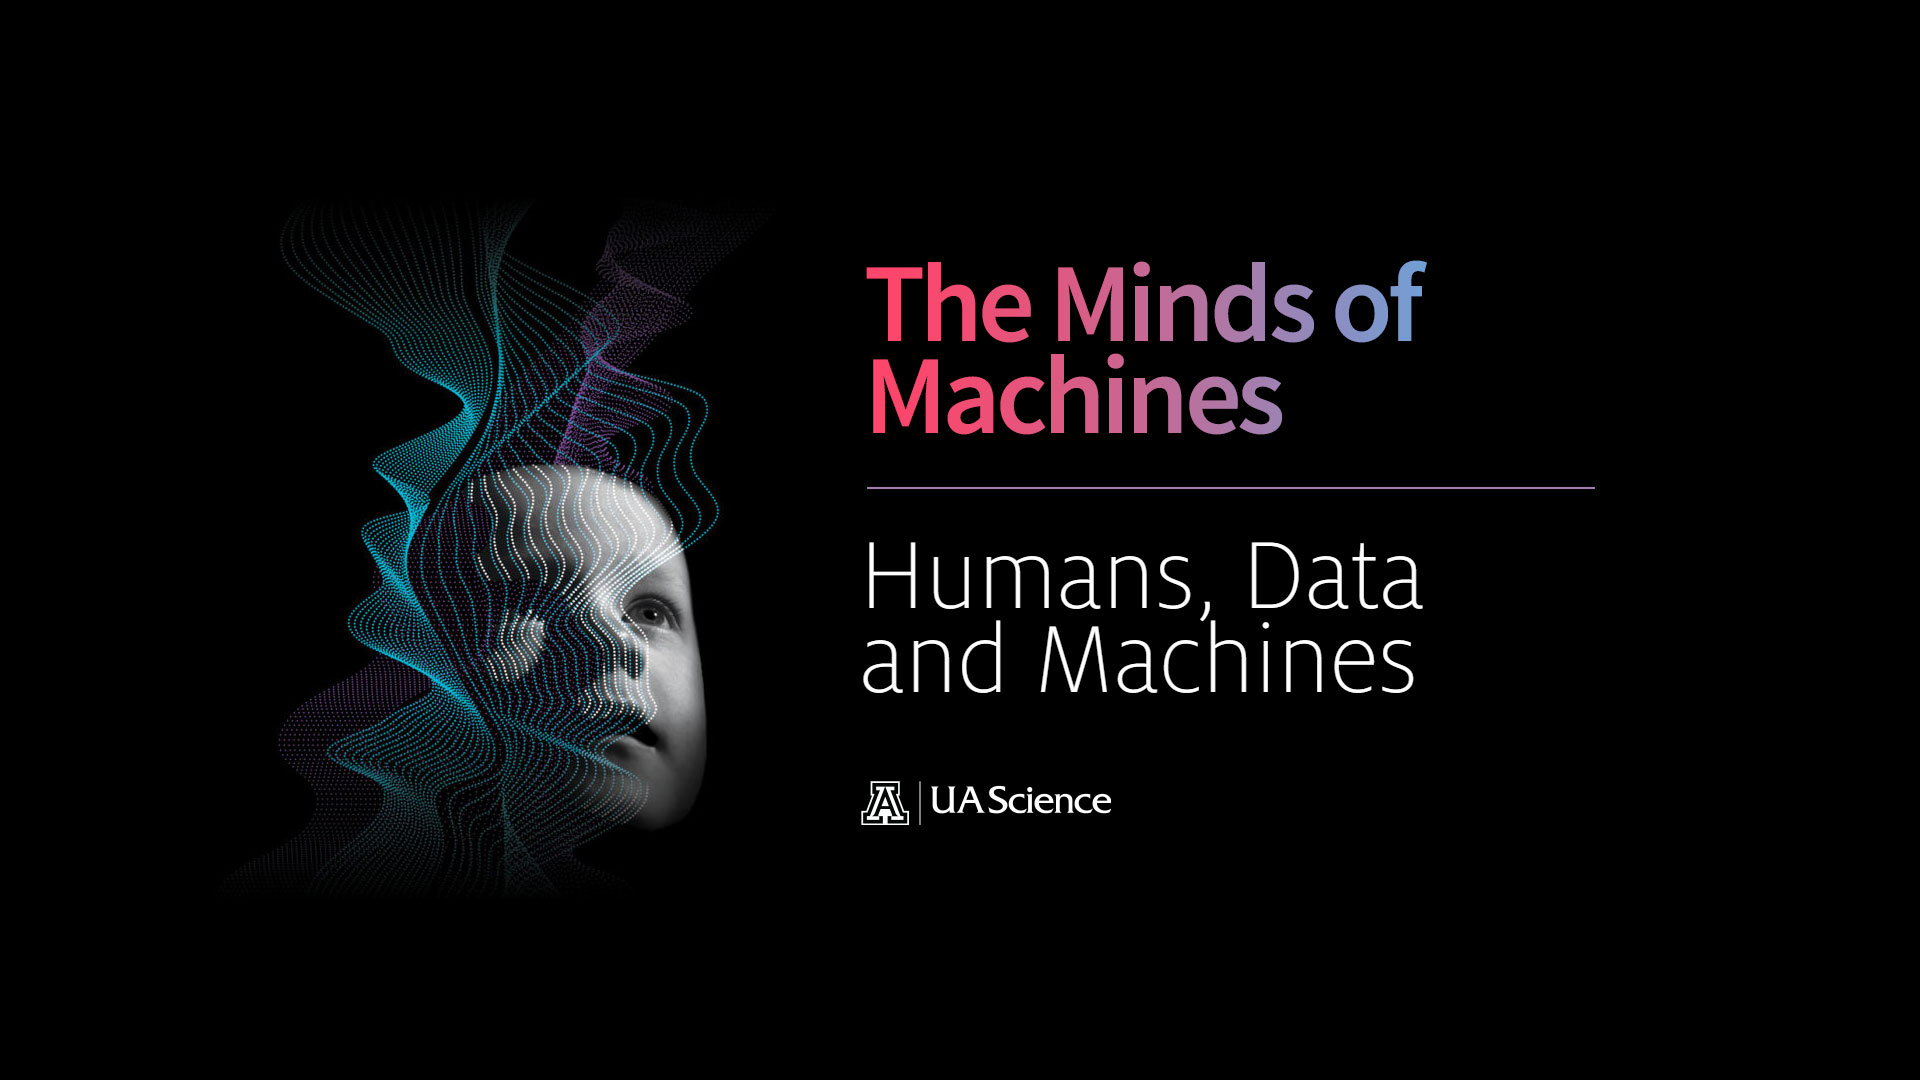 UA Science Lecture Series 2 Mind of Machines